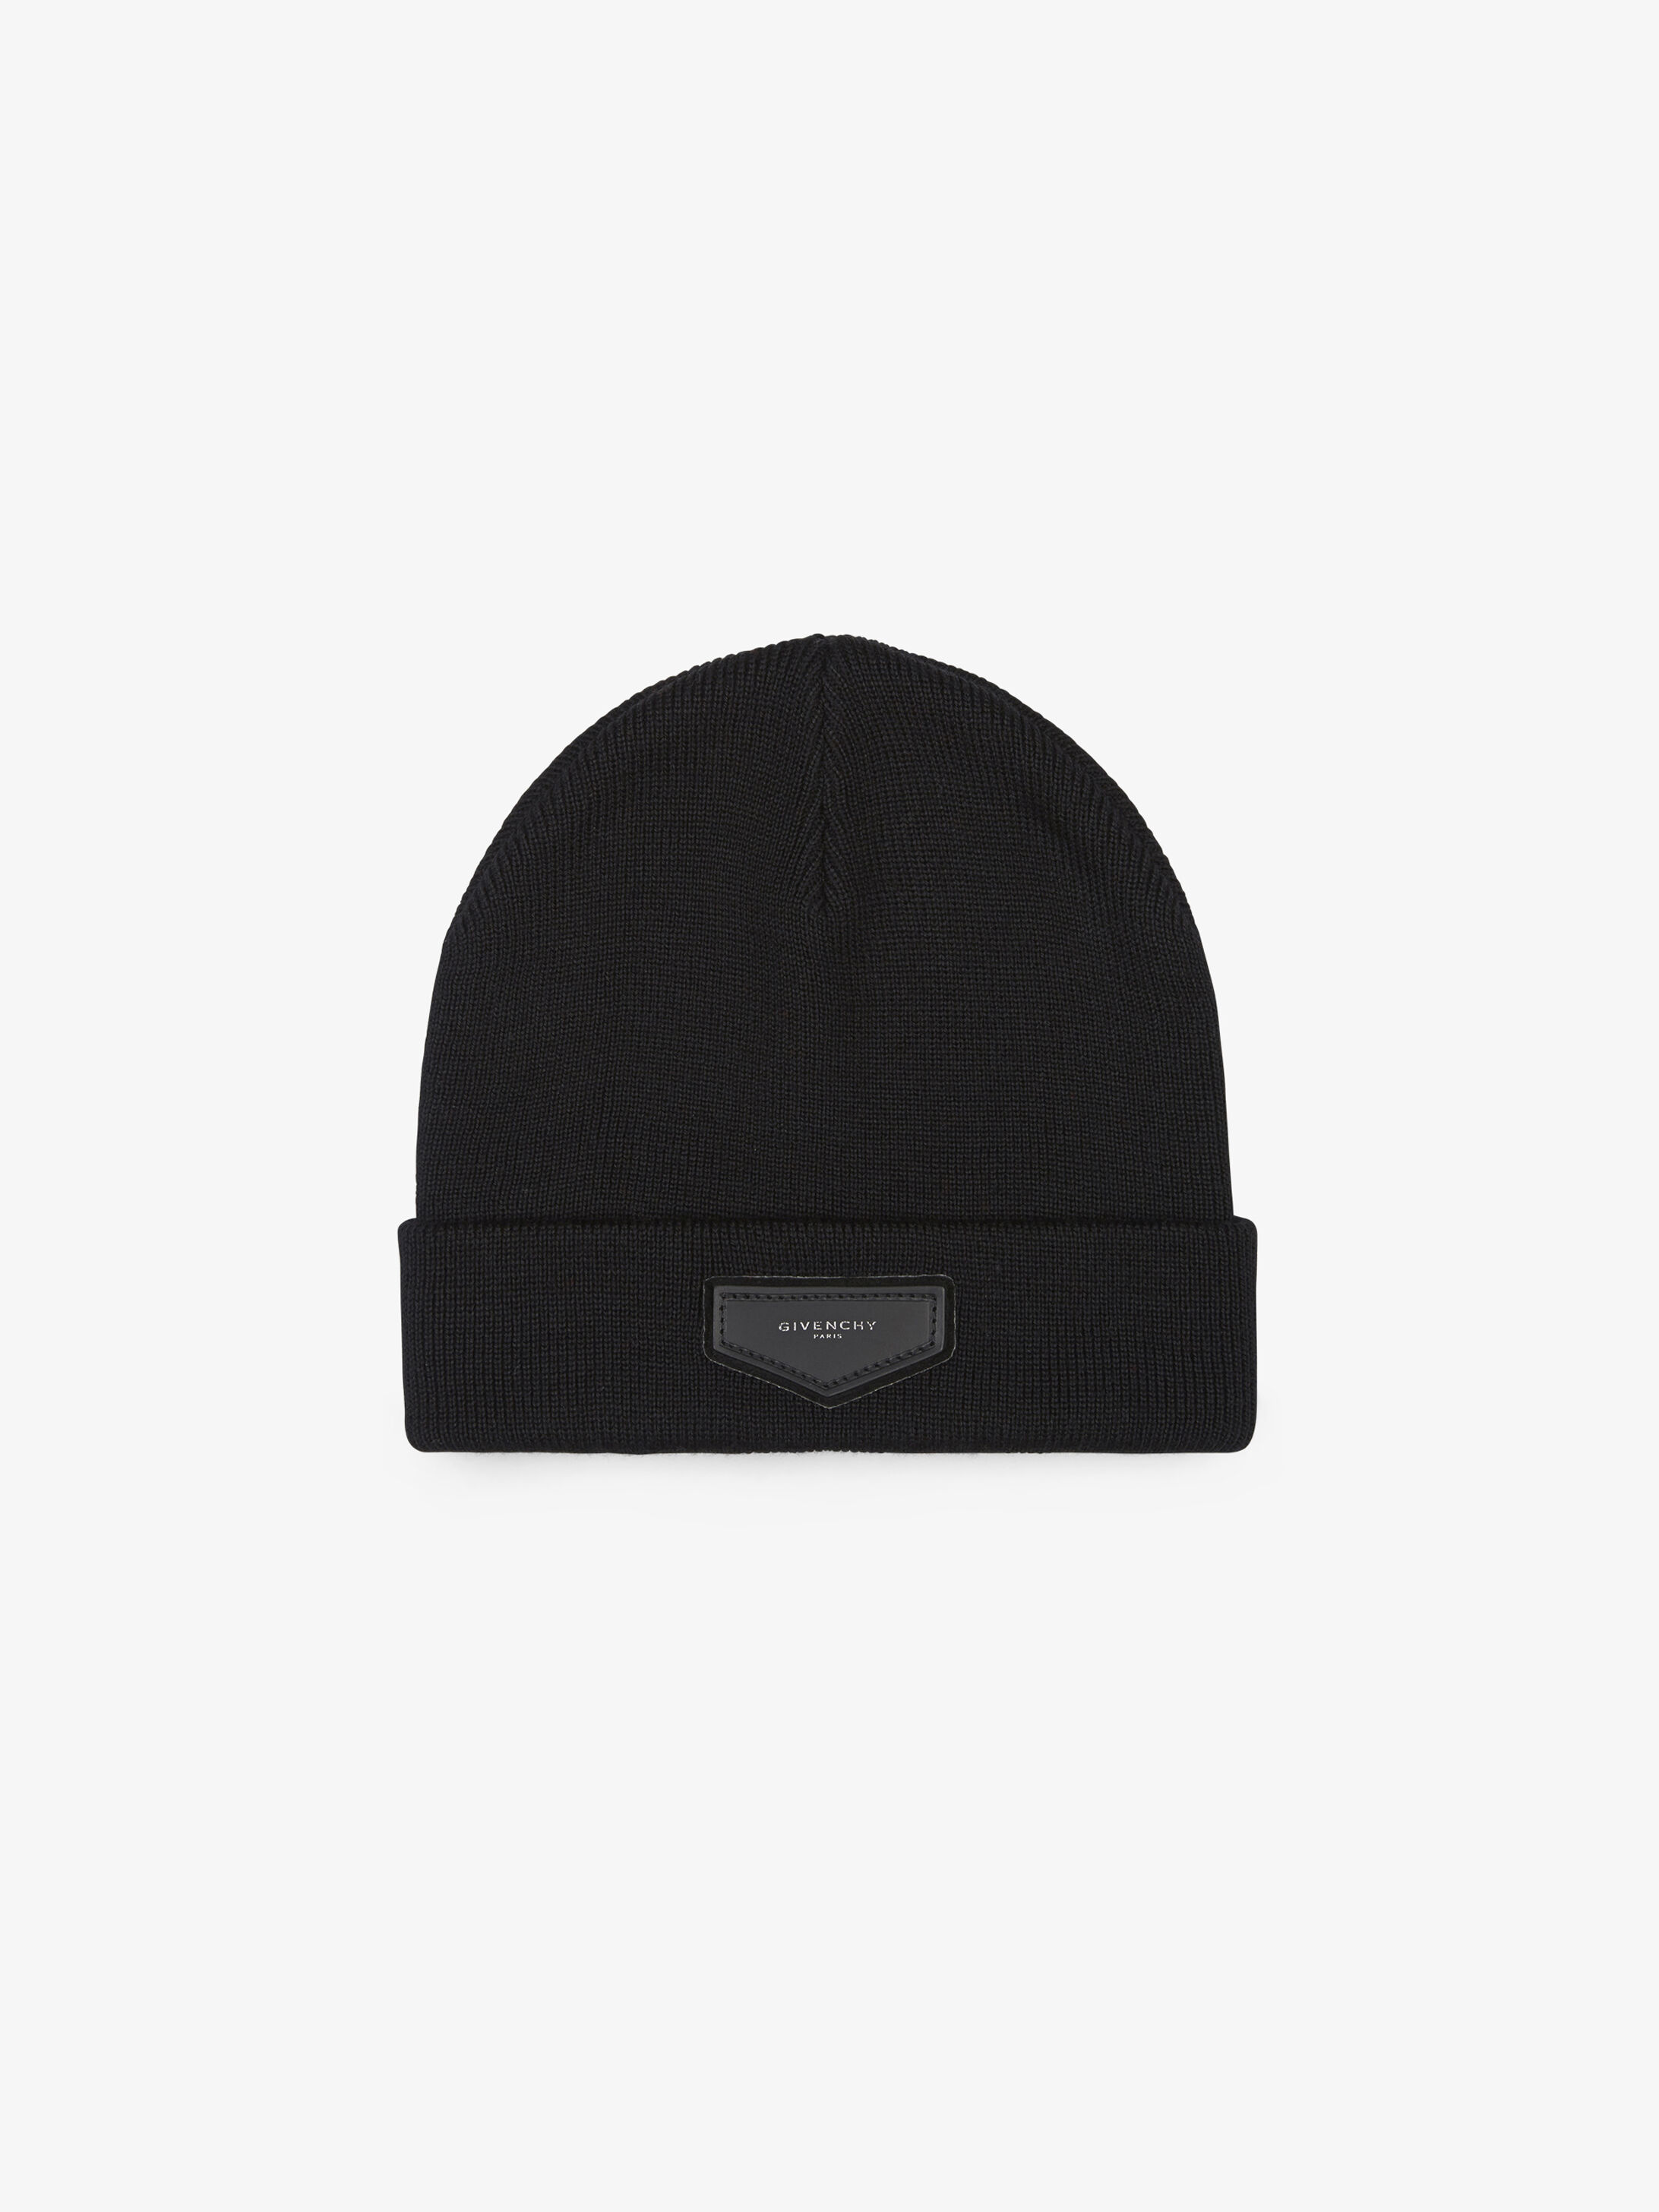 ef45676b579 Givenchy patch hat